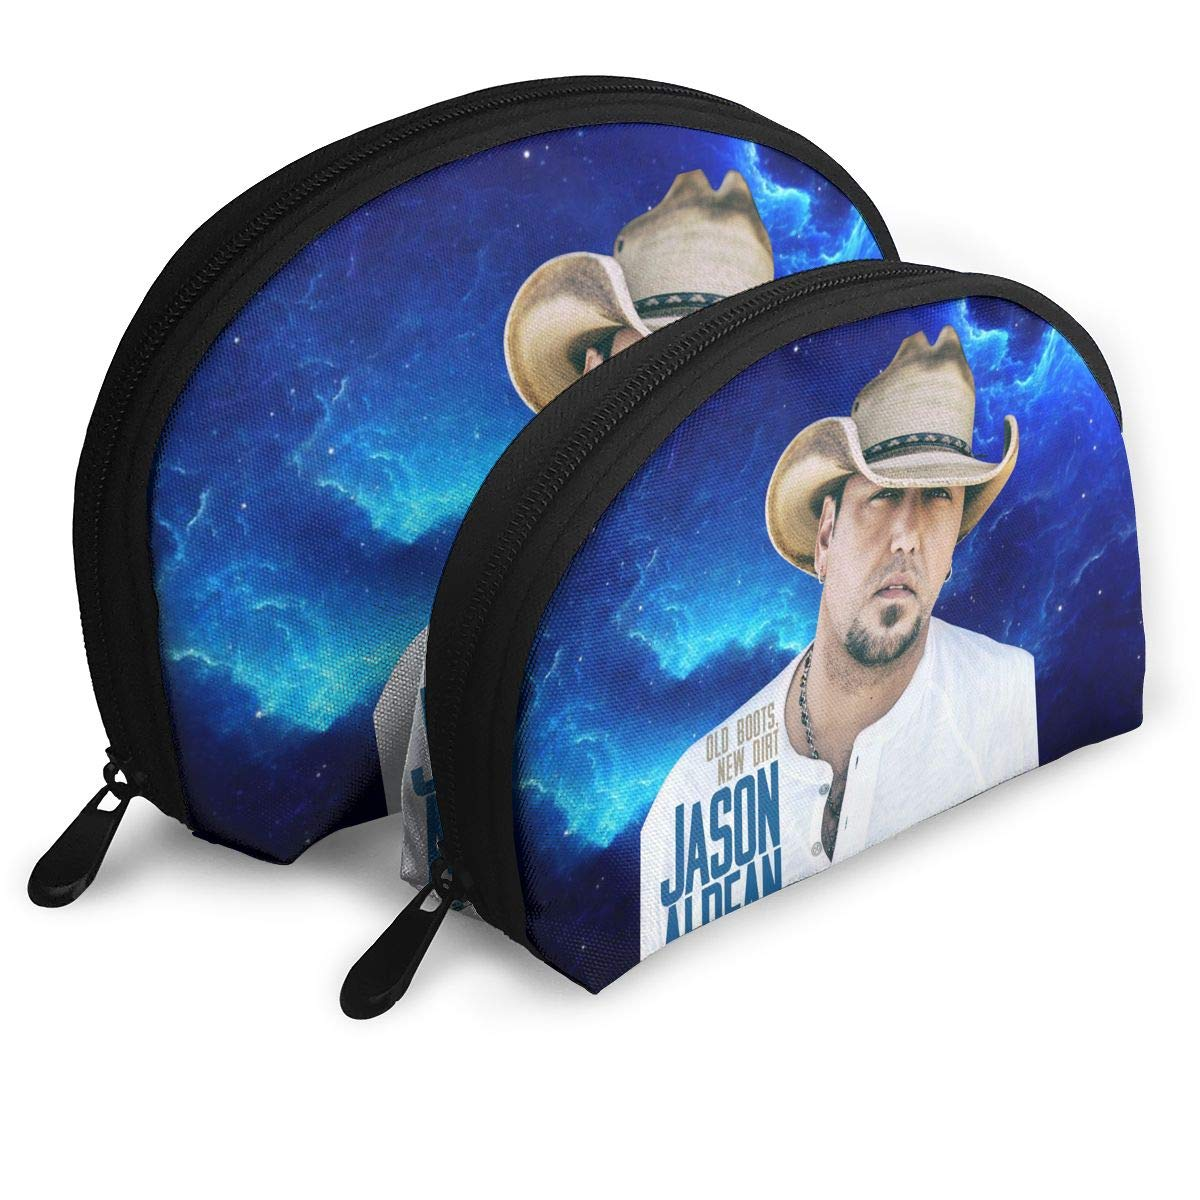 Amazon.com: JENNASTOLZZ Unisex Jason Aldean Old Boots New Dirt Durable Music Band Travel Cosmetic Storage Assorted Portable Bags Clutch Pouch Gift 2Pcs for ...